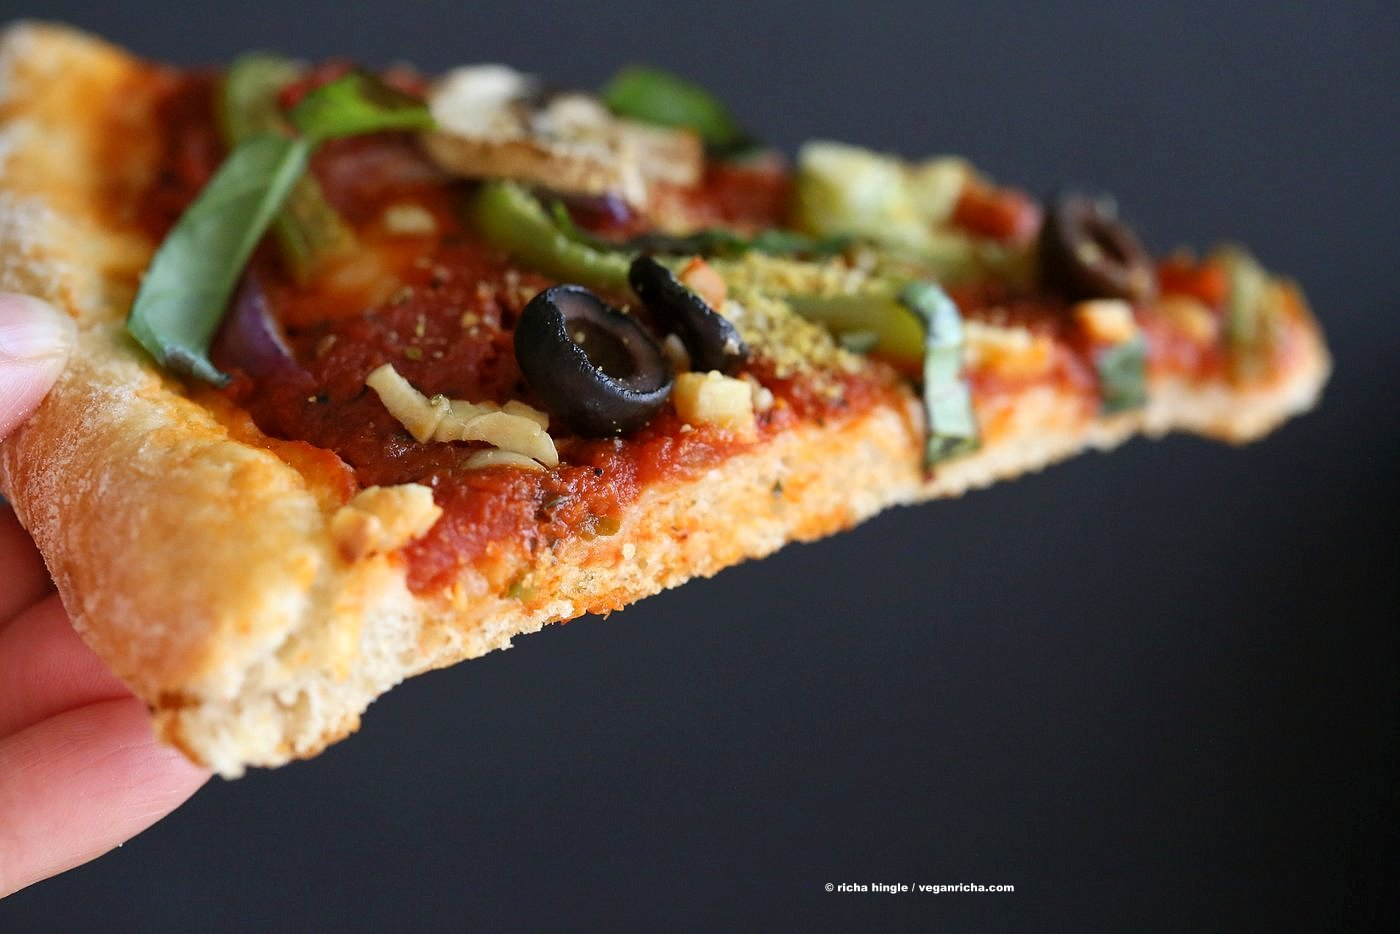 Easy Veggie Vegan Pizza with 20 minute Almost No Knead Crust! Pizza Sauce, Veggies, Mushrooms, Kalamata Olives baked to perfection. Dressed with Vegan Parmesan and fresh basil. Vegan Soy-free Recipe. Can be Nut-free | VeganRicha.com